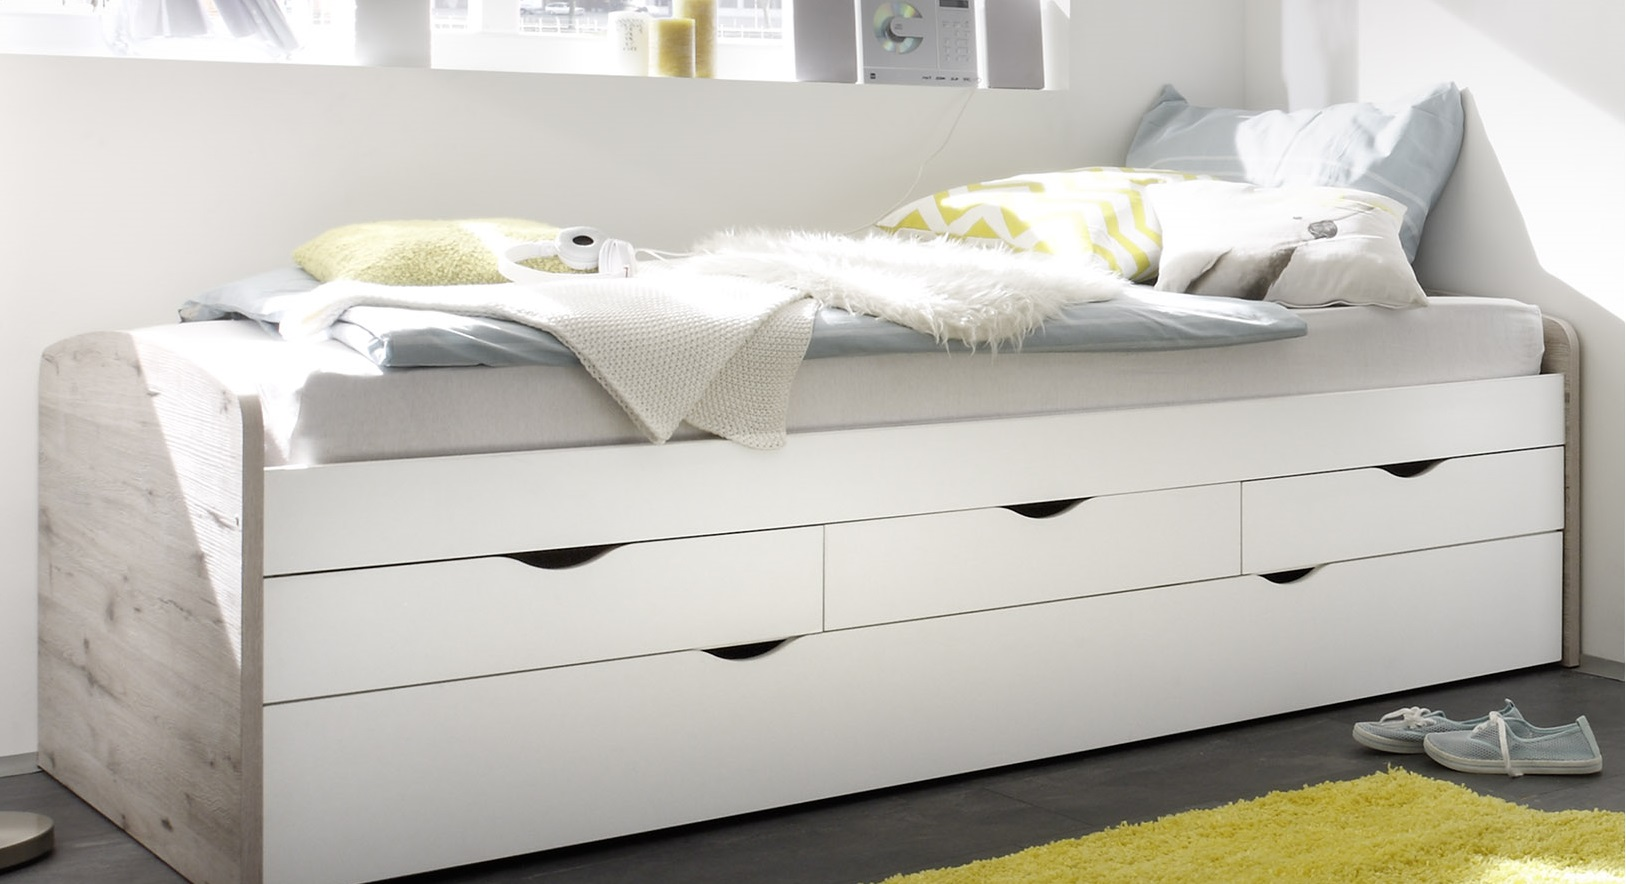 bett einzelbett ausziehbett schubladenbett tandembett 90cm wei sandeiche ebay. Black Bedroom Furniture Sets. Home Design Ideas